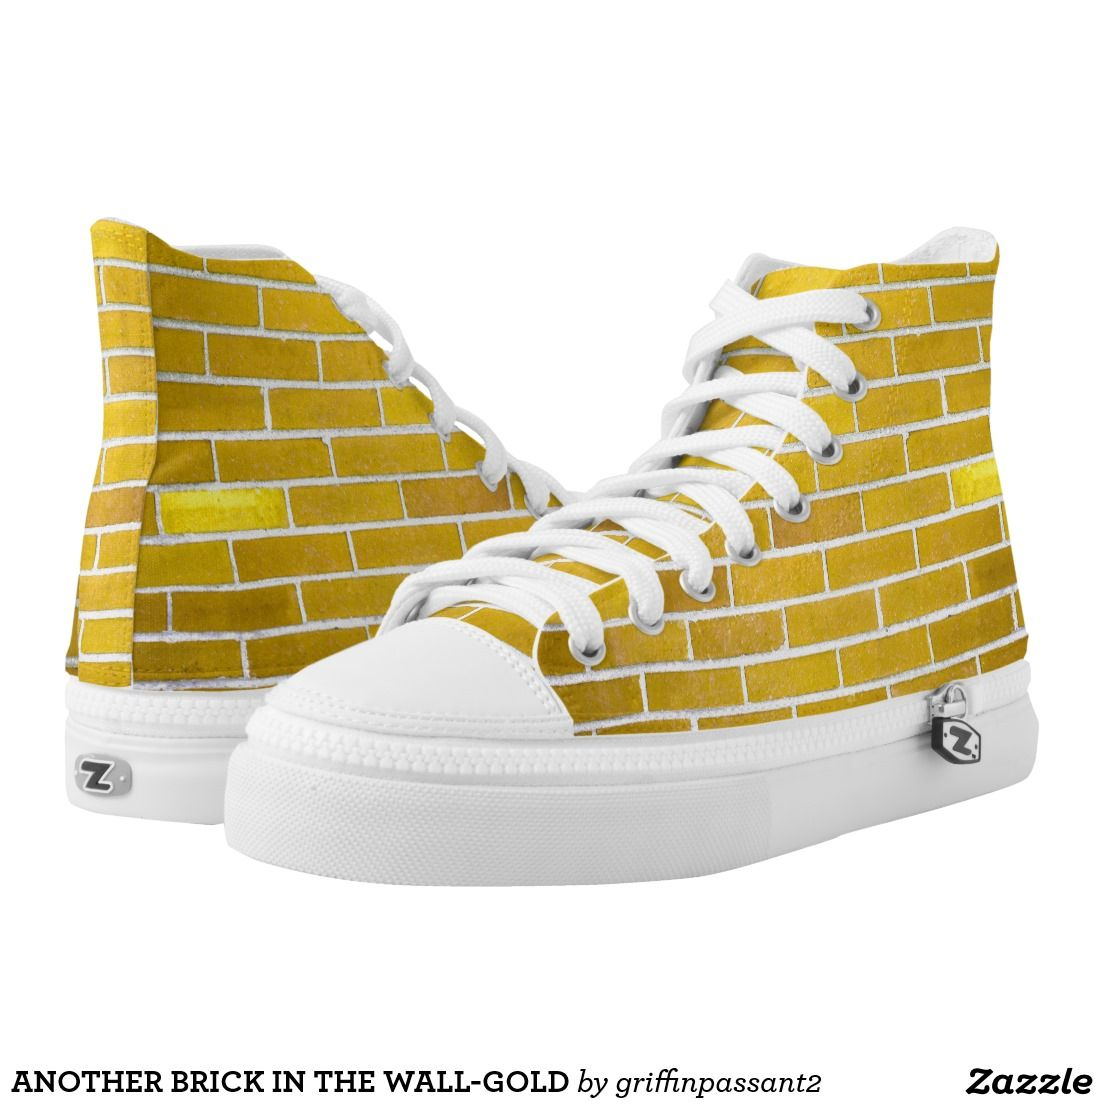 ANOTHER BRICK IN THE WALL-GOLD PRINTED SHOES | FOOTWEAR/HEADWEAR ...